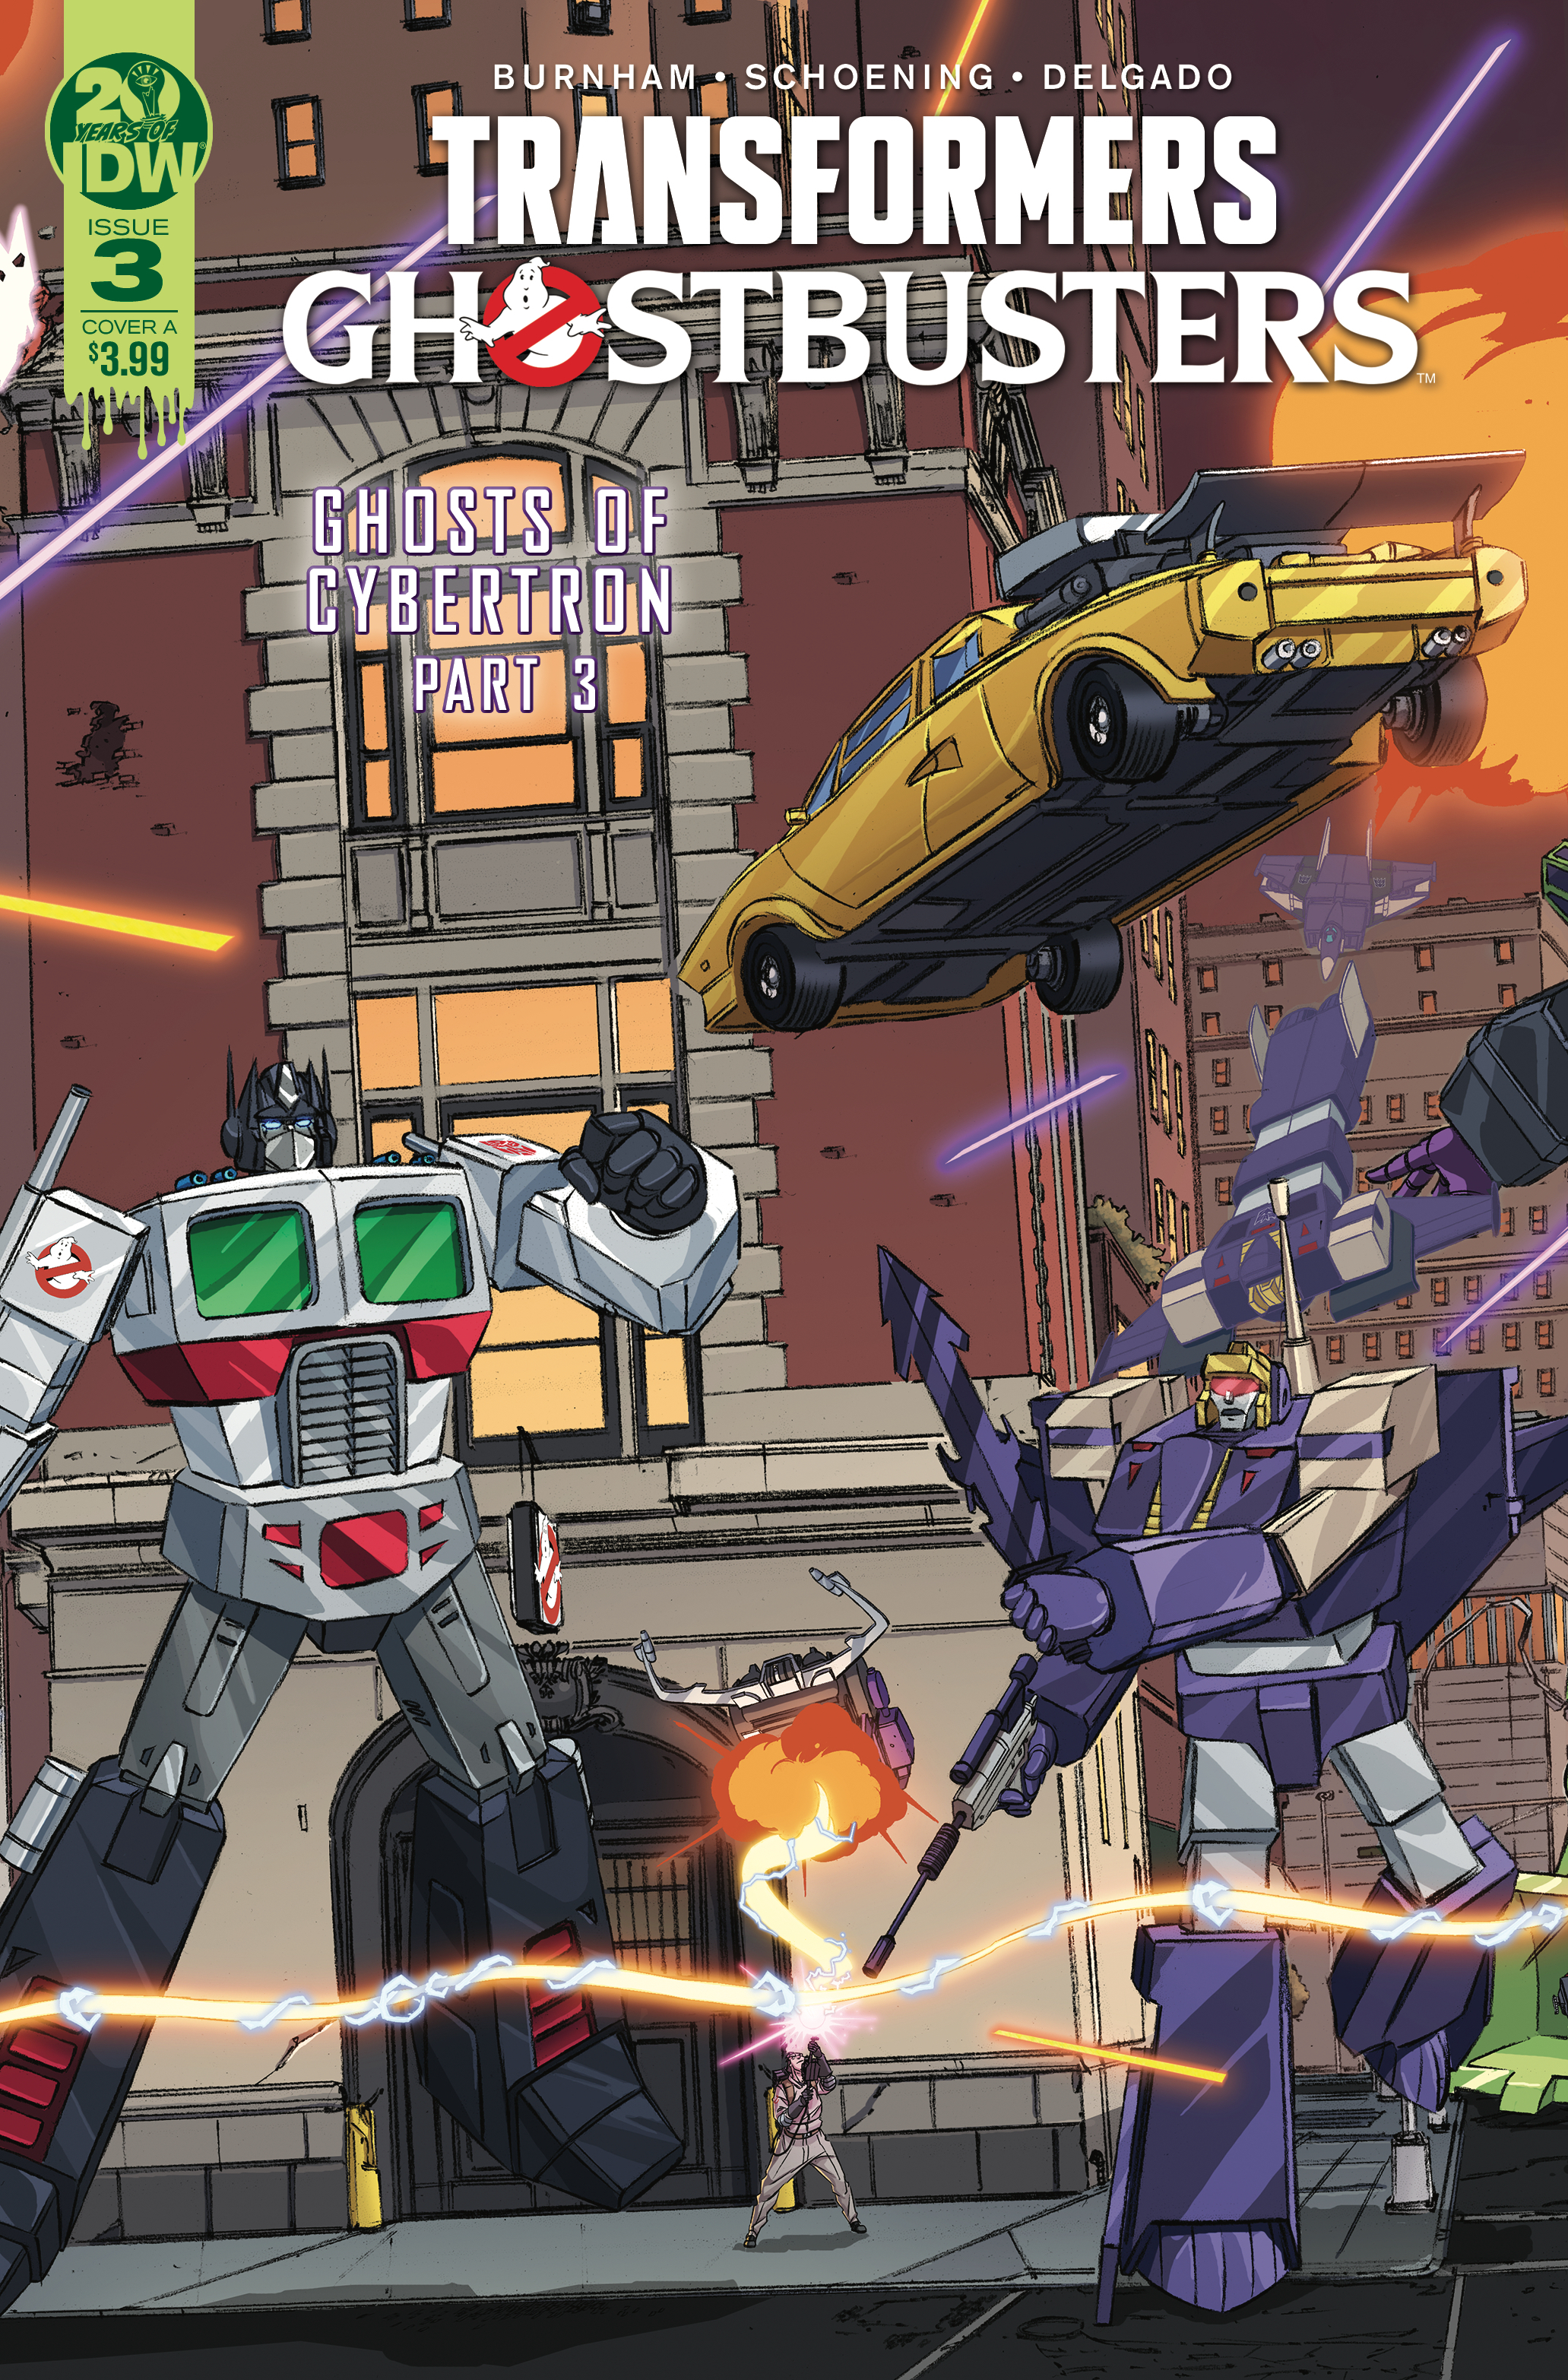 IDW Transformers x Ghostbusters #03 ITunes Preview - Transformers